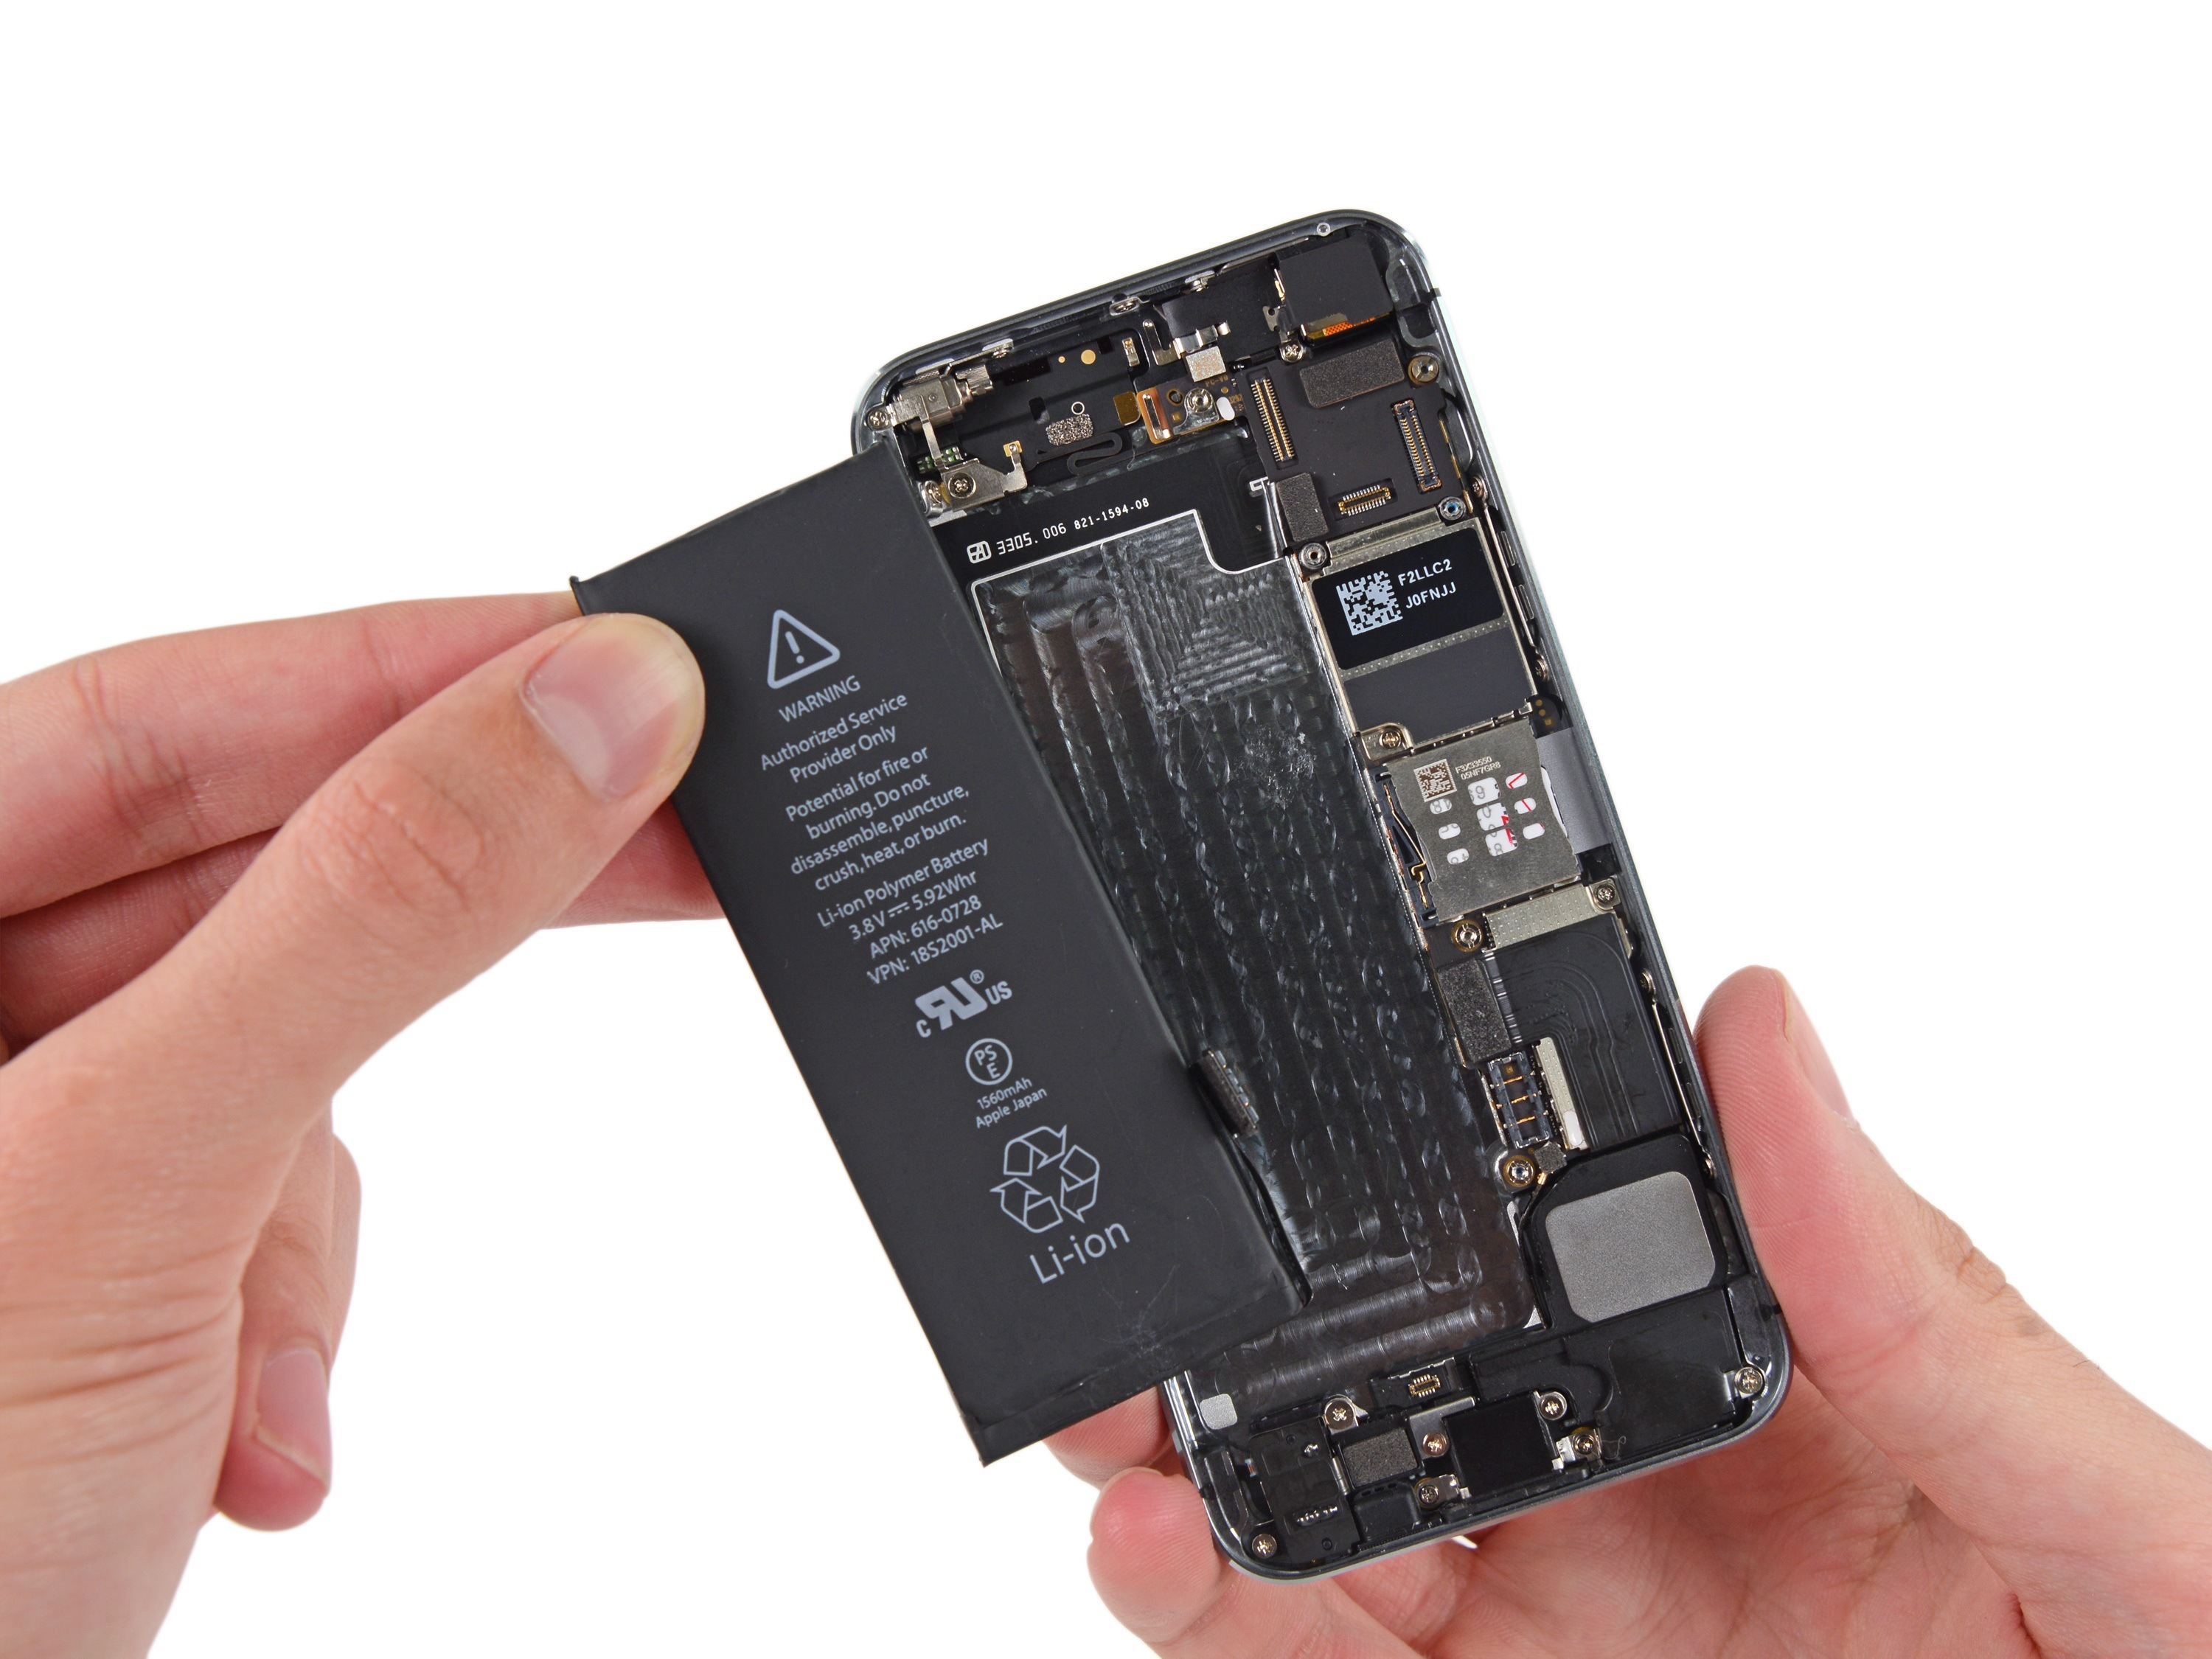 How To Replace The Battery In Your Iphone 5s Ifixit Repair Guide 3 Way Switch Wiring Diagram Basic Circuit Breaker Sizing